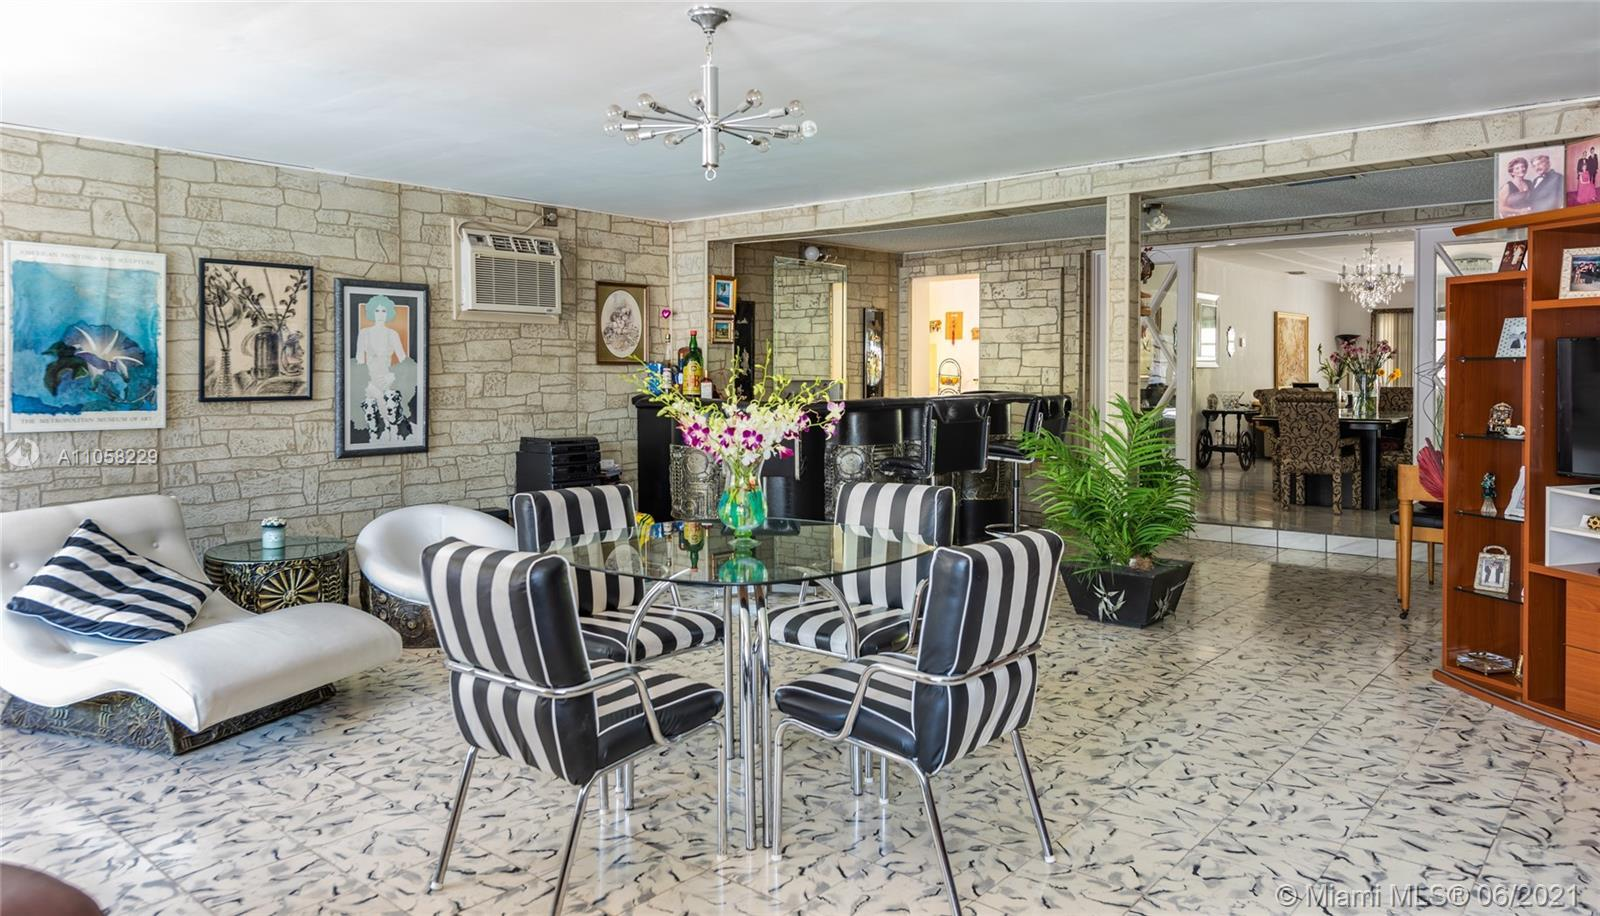 A perfect opportunity in one on Miami Beach's most family-friendly neighborhoods - LakeView. This op